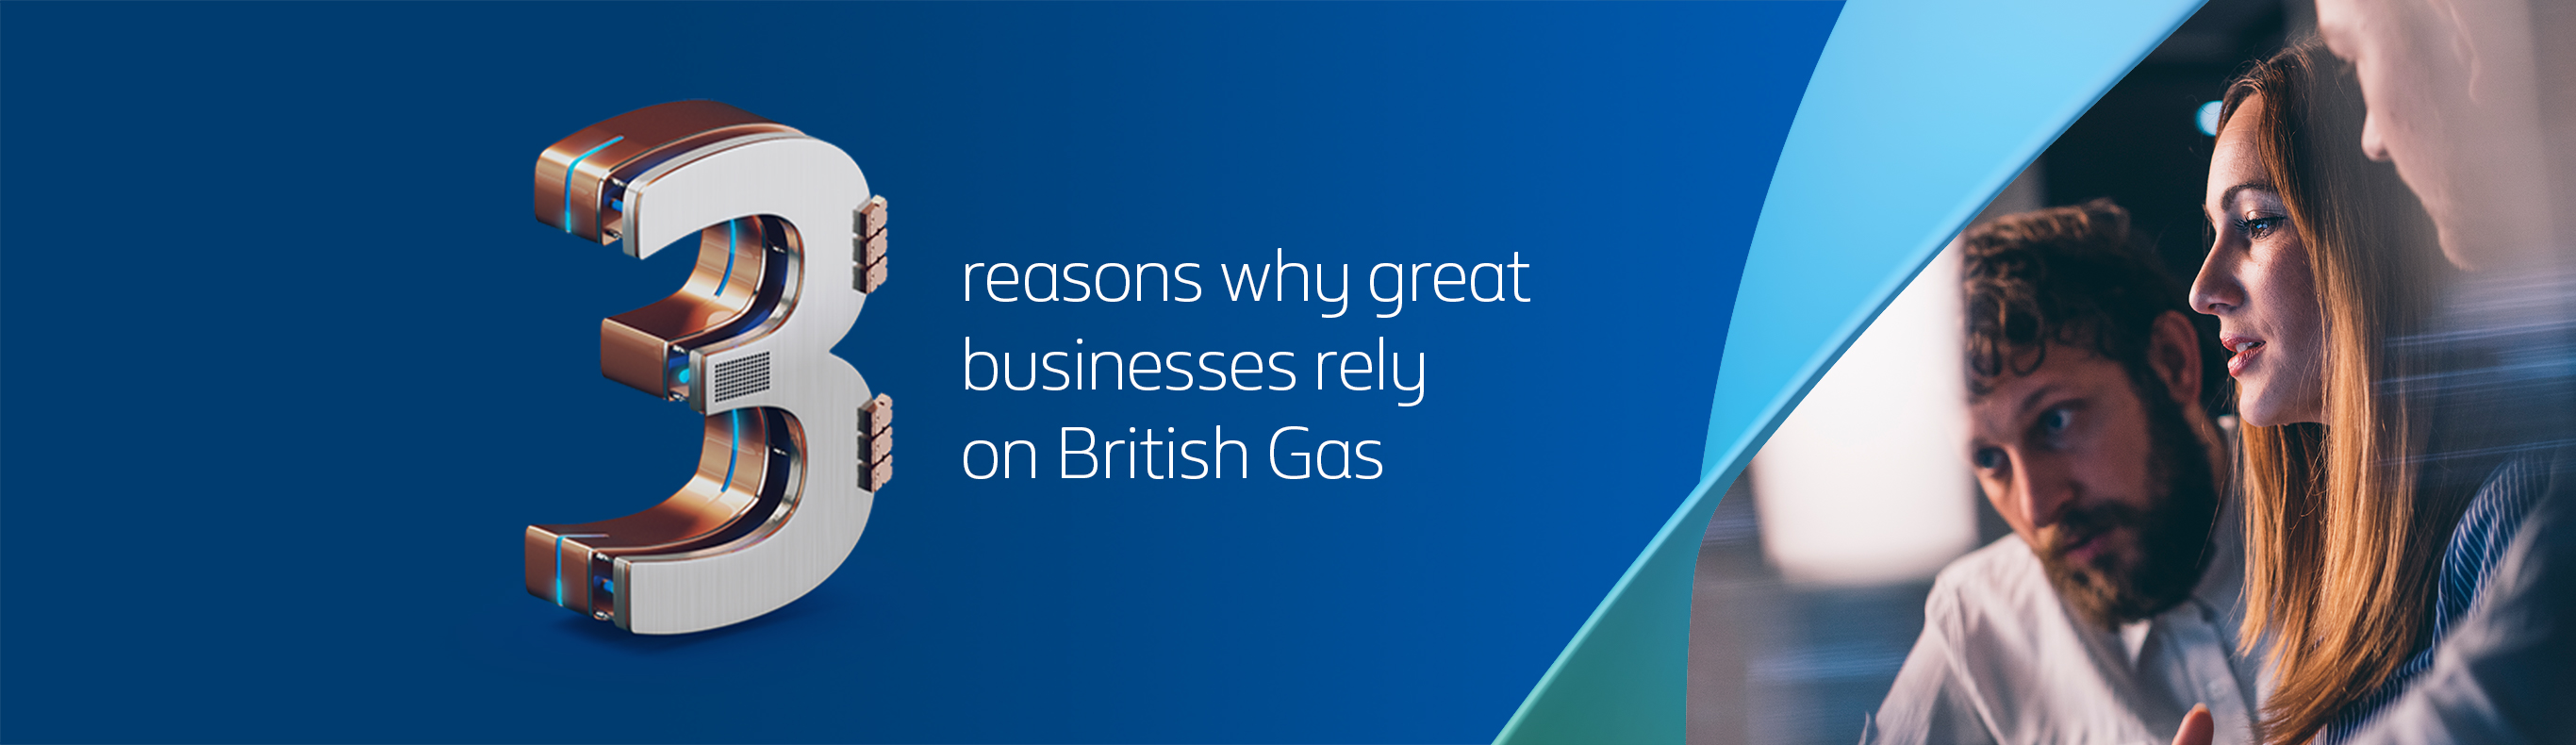 3 reasons why great businesses rely on British Gas